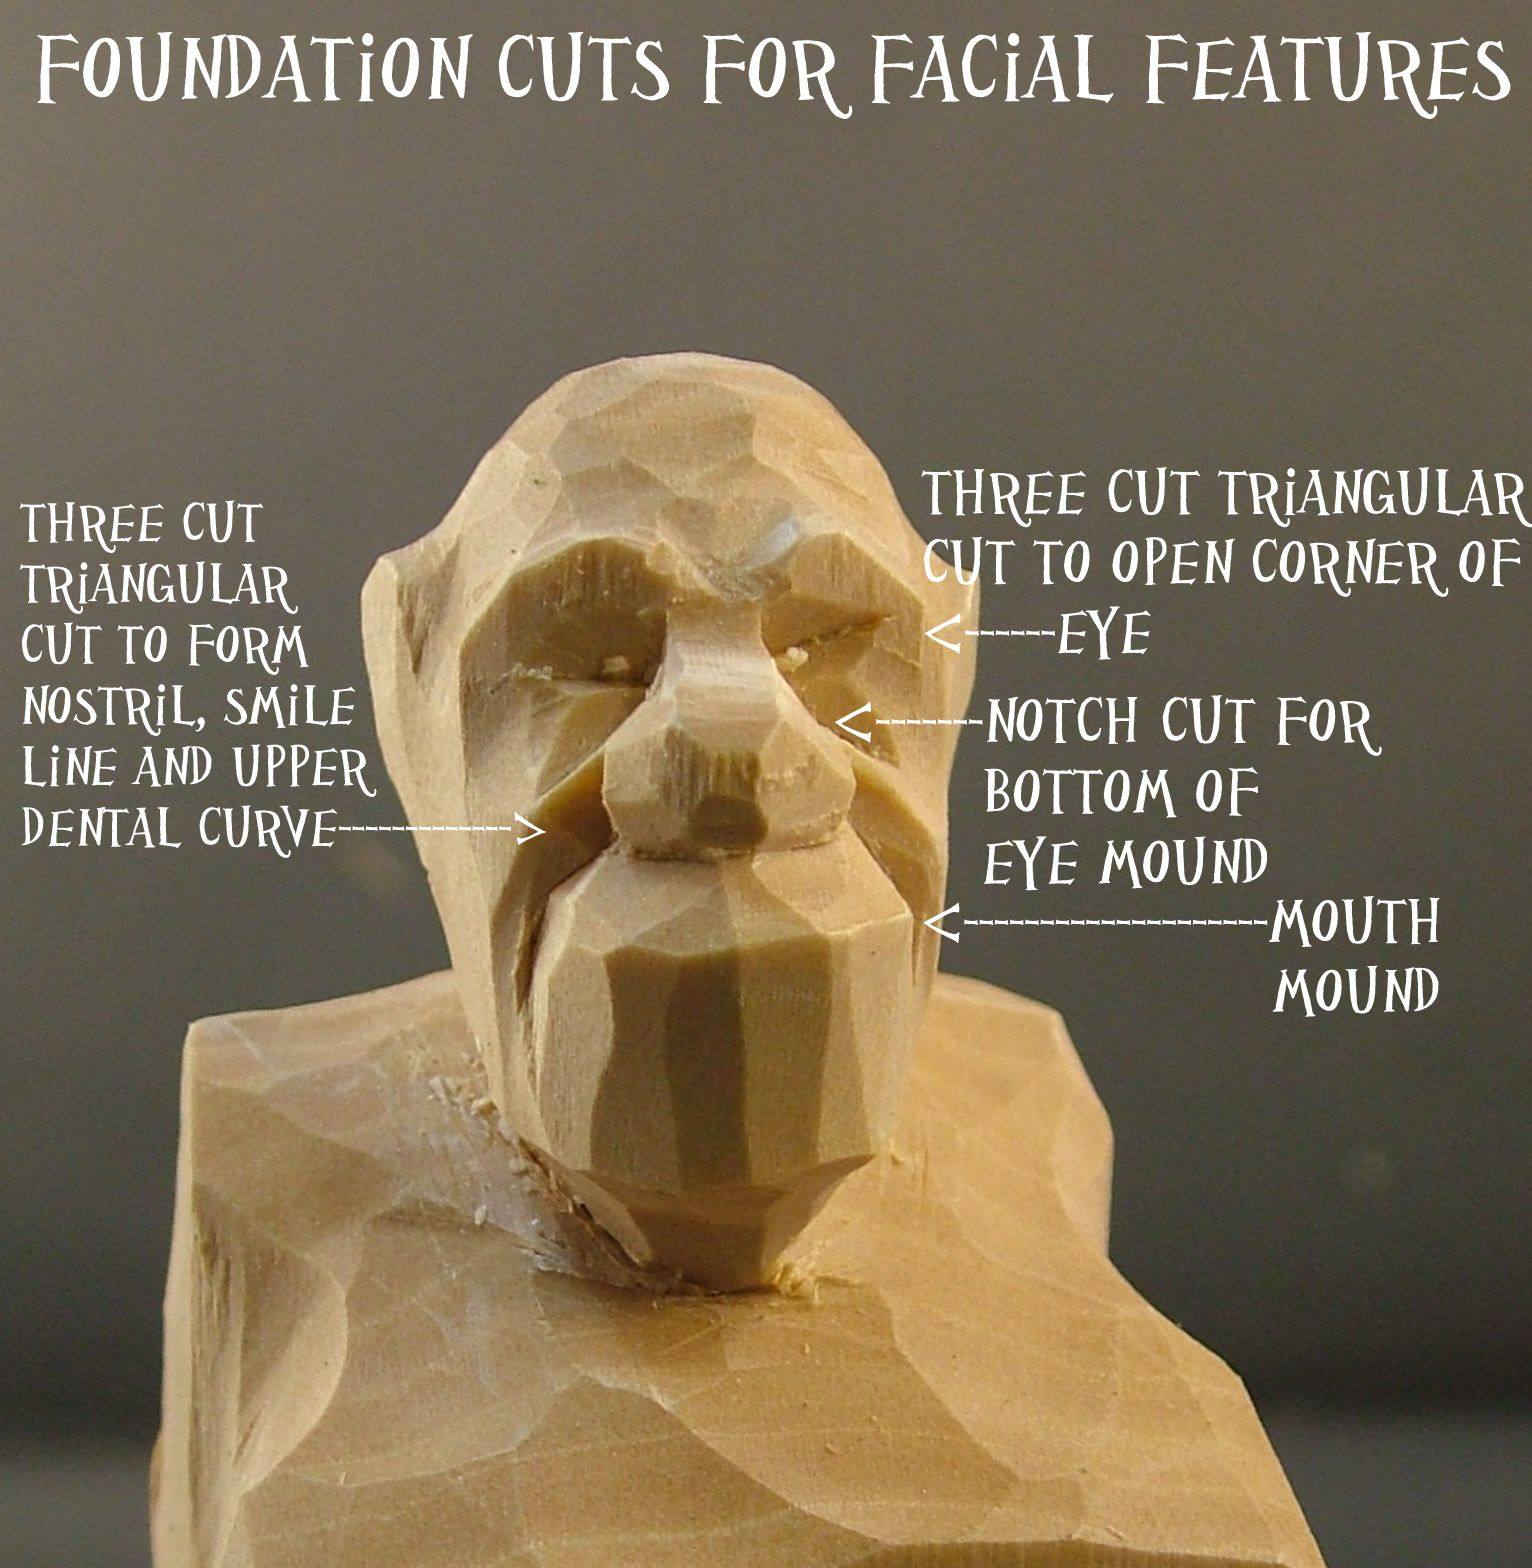 Foundation cuts for facial features wood carvings pinterest